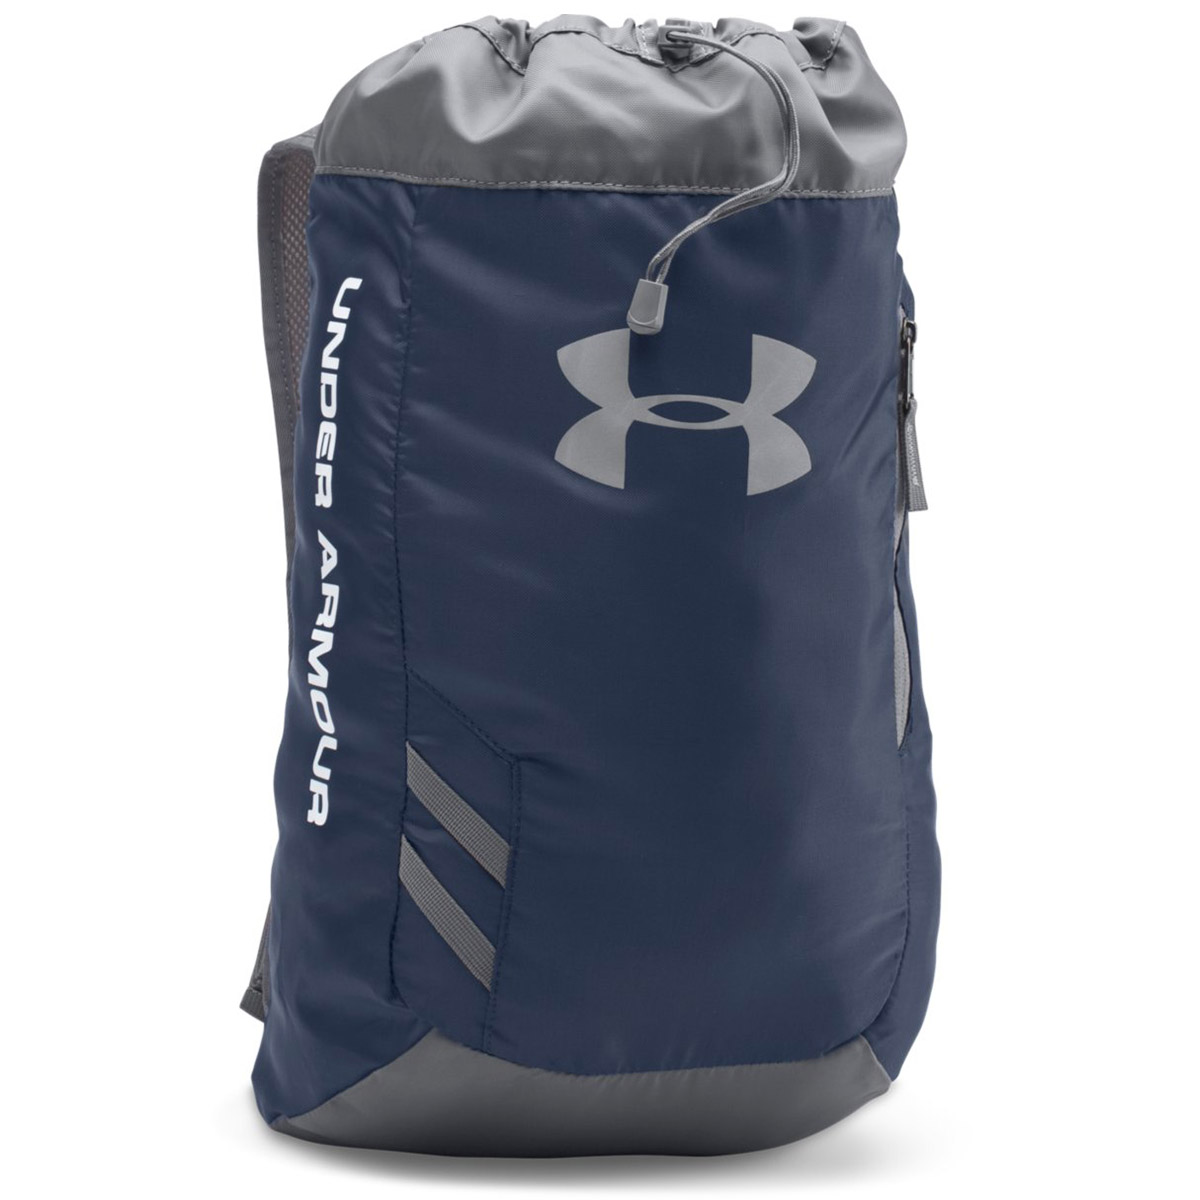 under armour 2017 ua trance sackpack drawstring bag. Black Bedroom Furniture Sets. Home Design Ideas